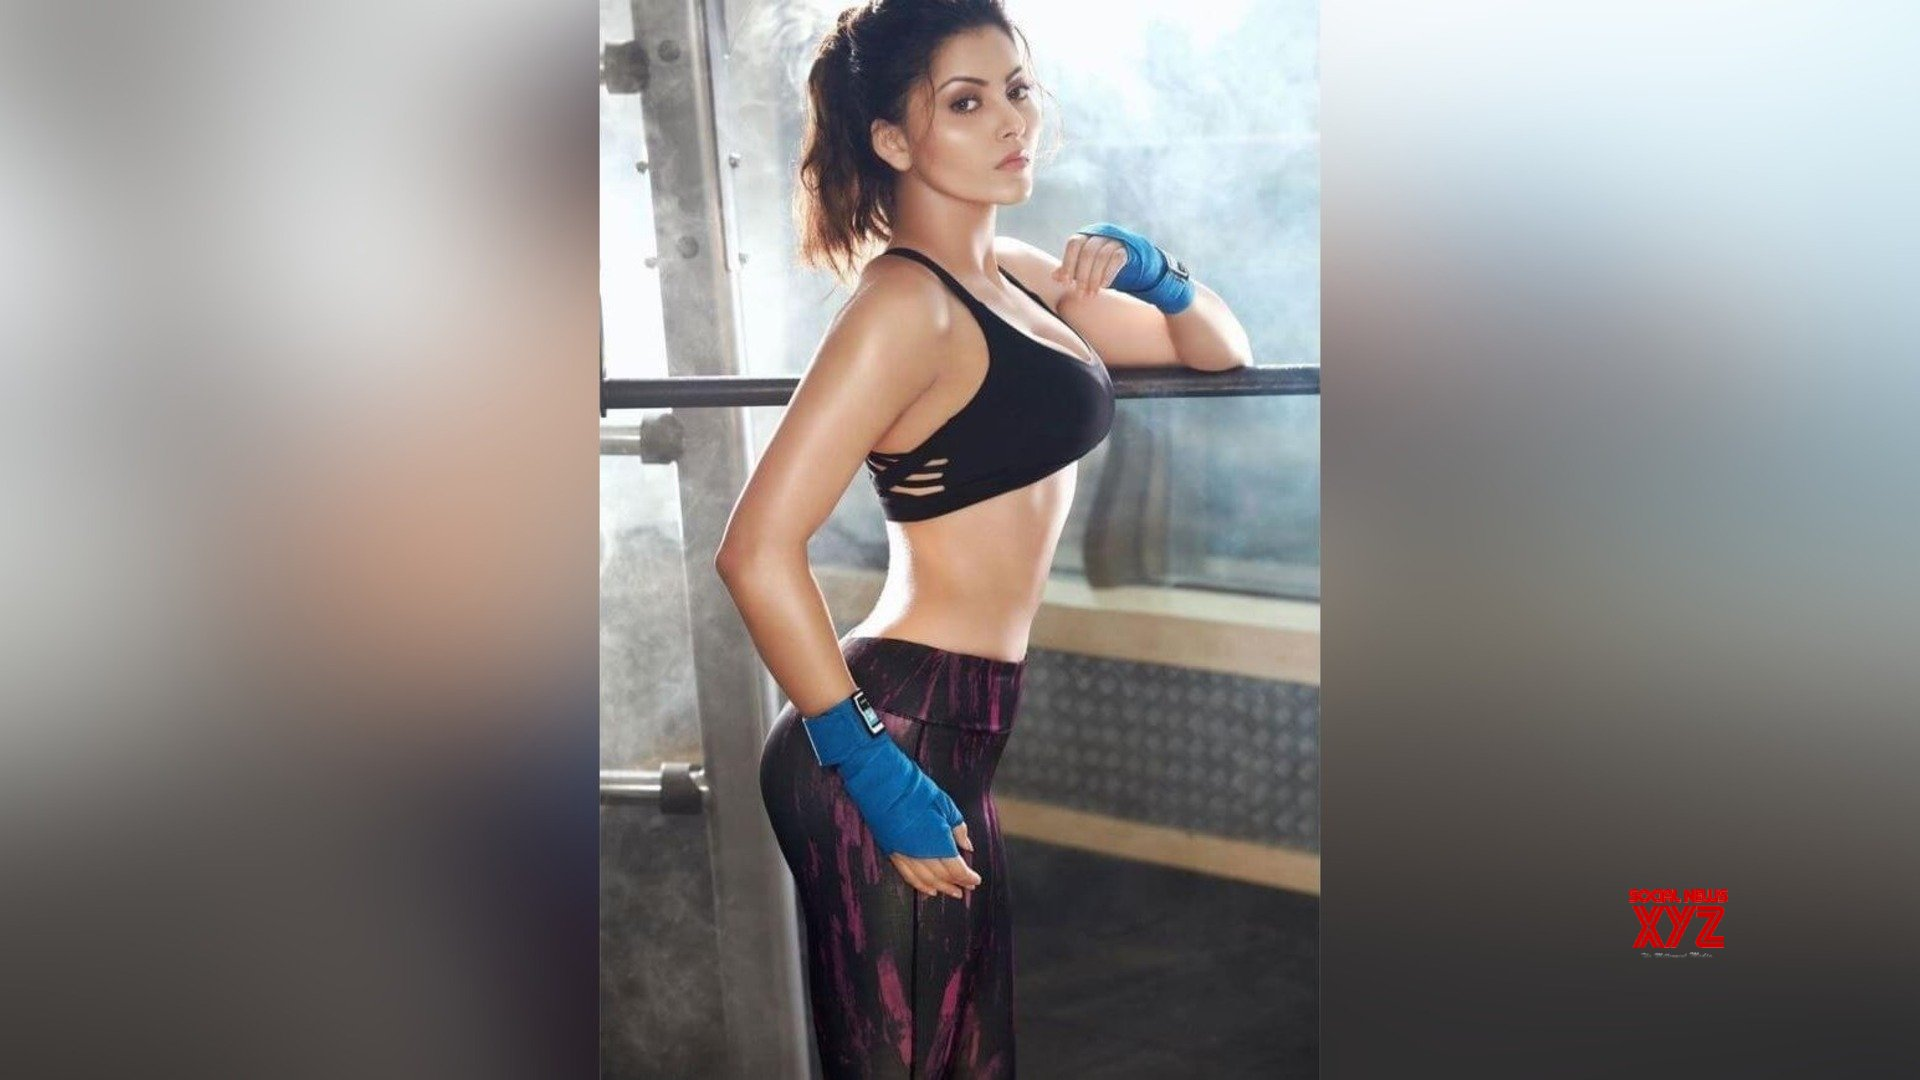 Actress-Urvashi-Rautela-s-effortless-workout-with-50kgs-Bosu-ball-and-dumbells-stuns-the-audience-.jpeg?fit=1920%2C1080&quality=80&zoom=1&ssl=1?v=1630093603